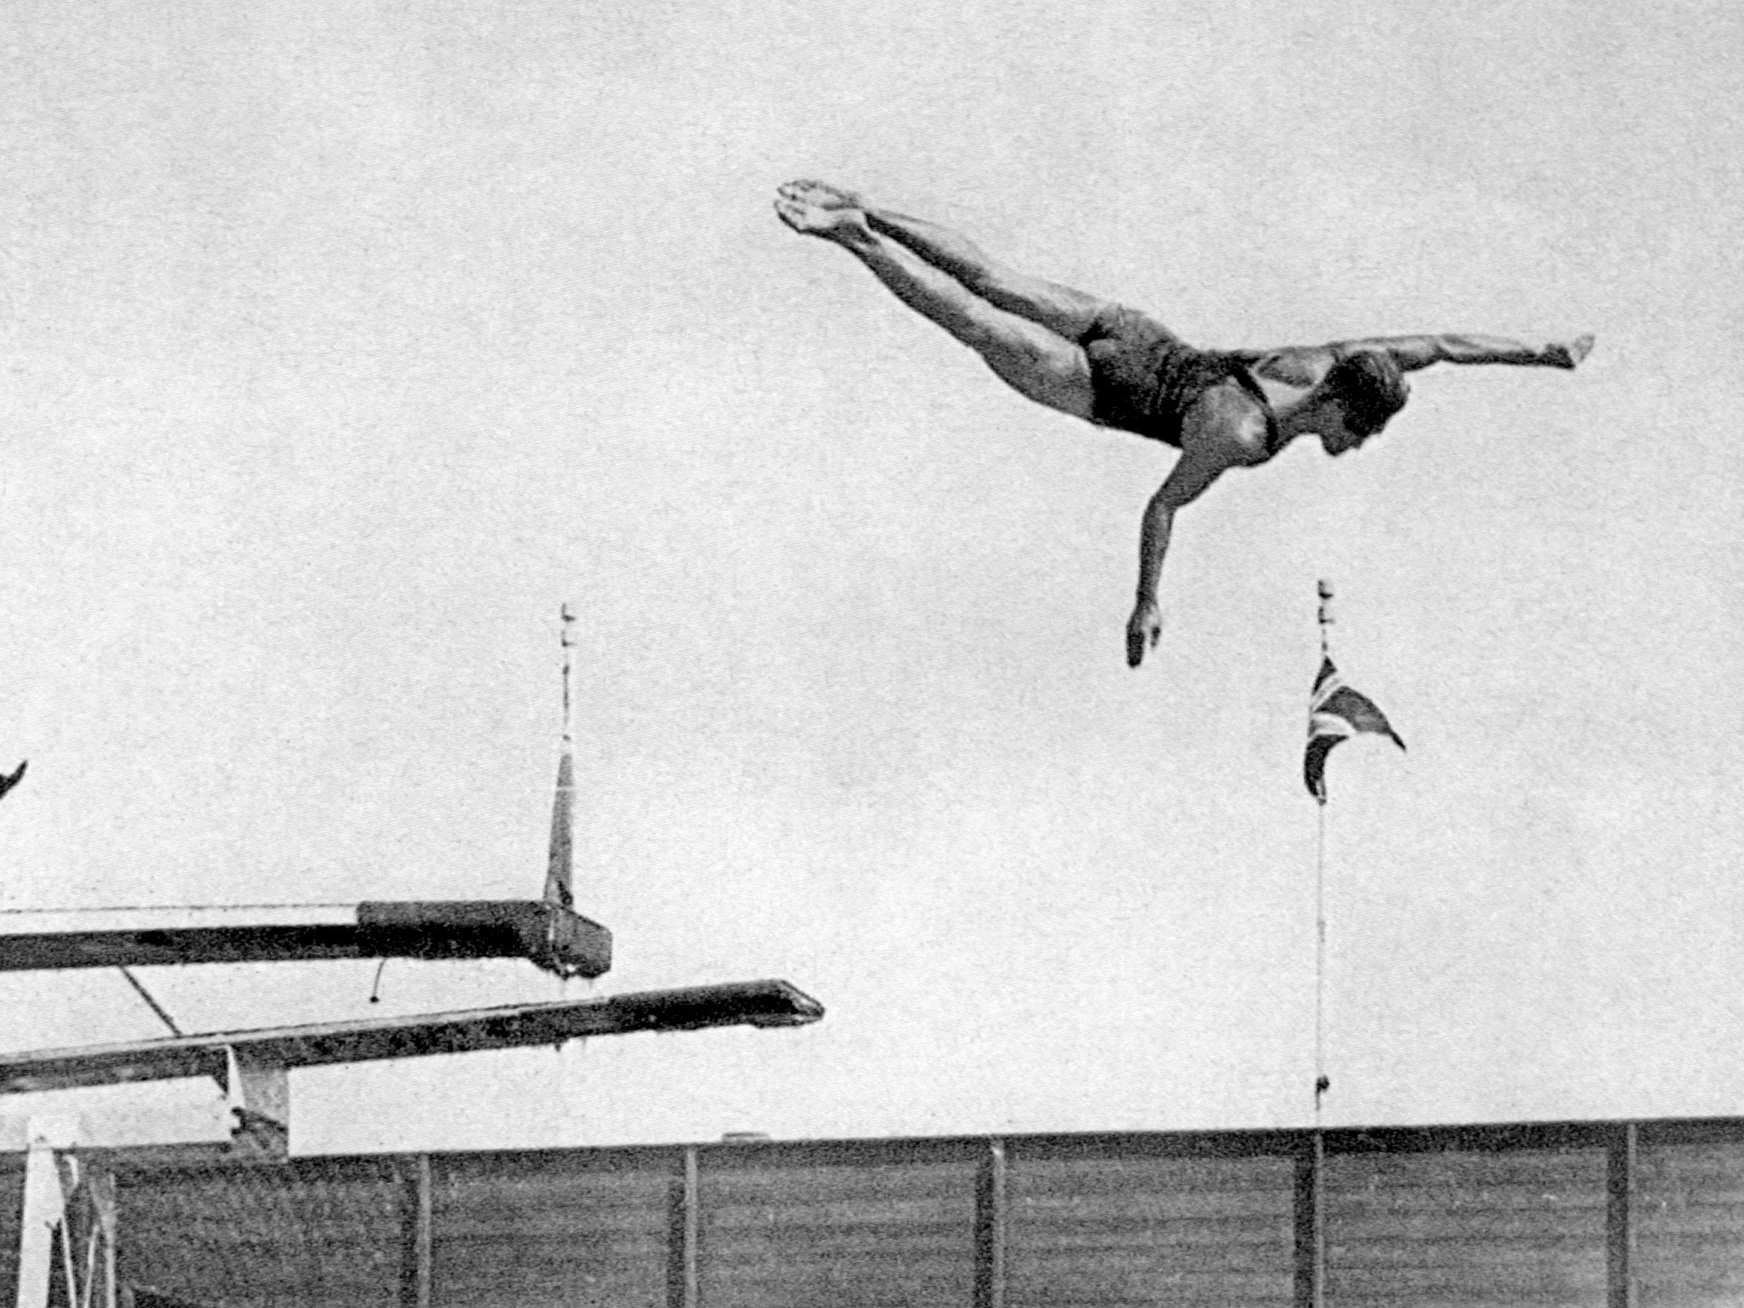 Amsterdam, 1928: The USA's Peter Desjardins went on to win gold in the highboard and springboard diving.